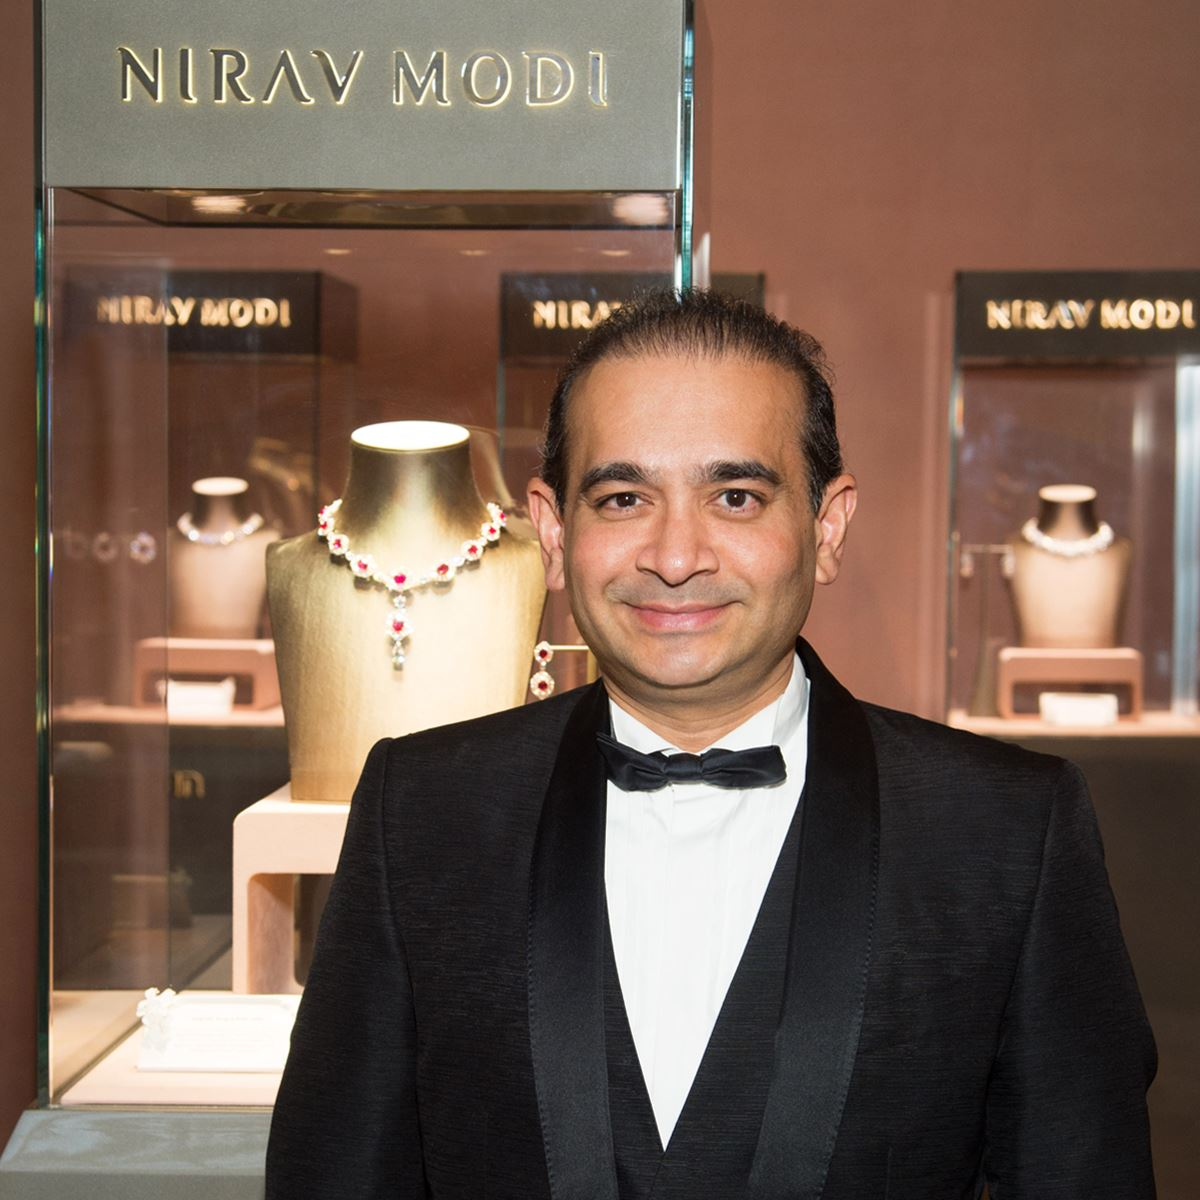 Nirav Modi Arrested in London, to Appear in Court